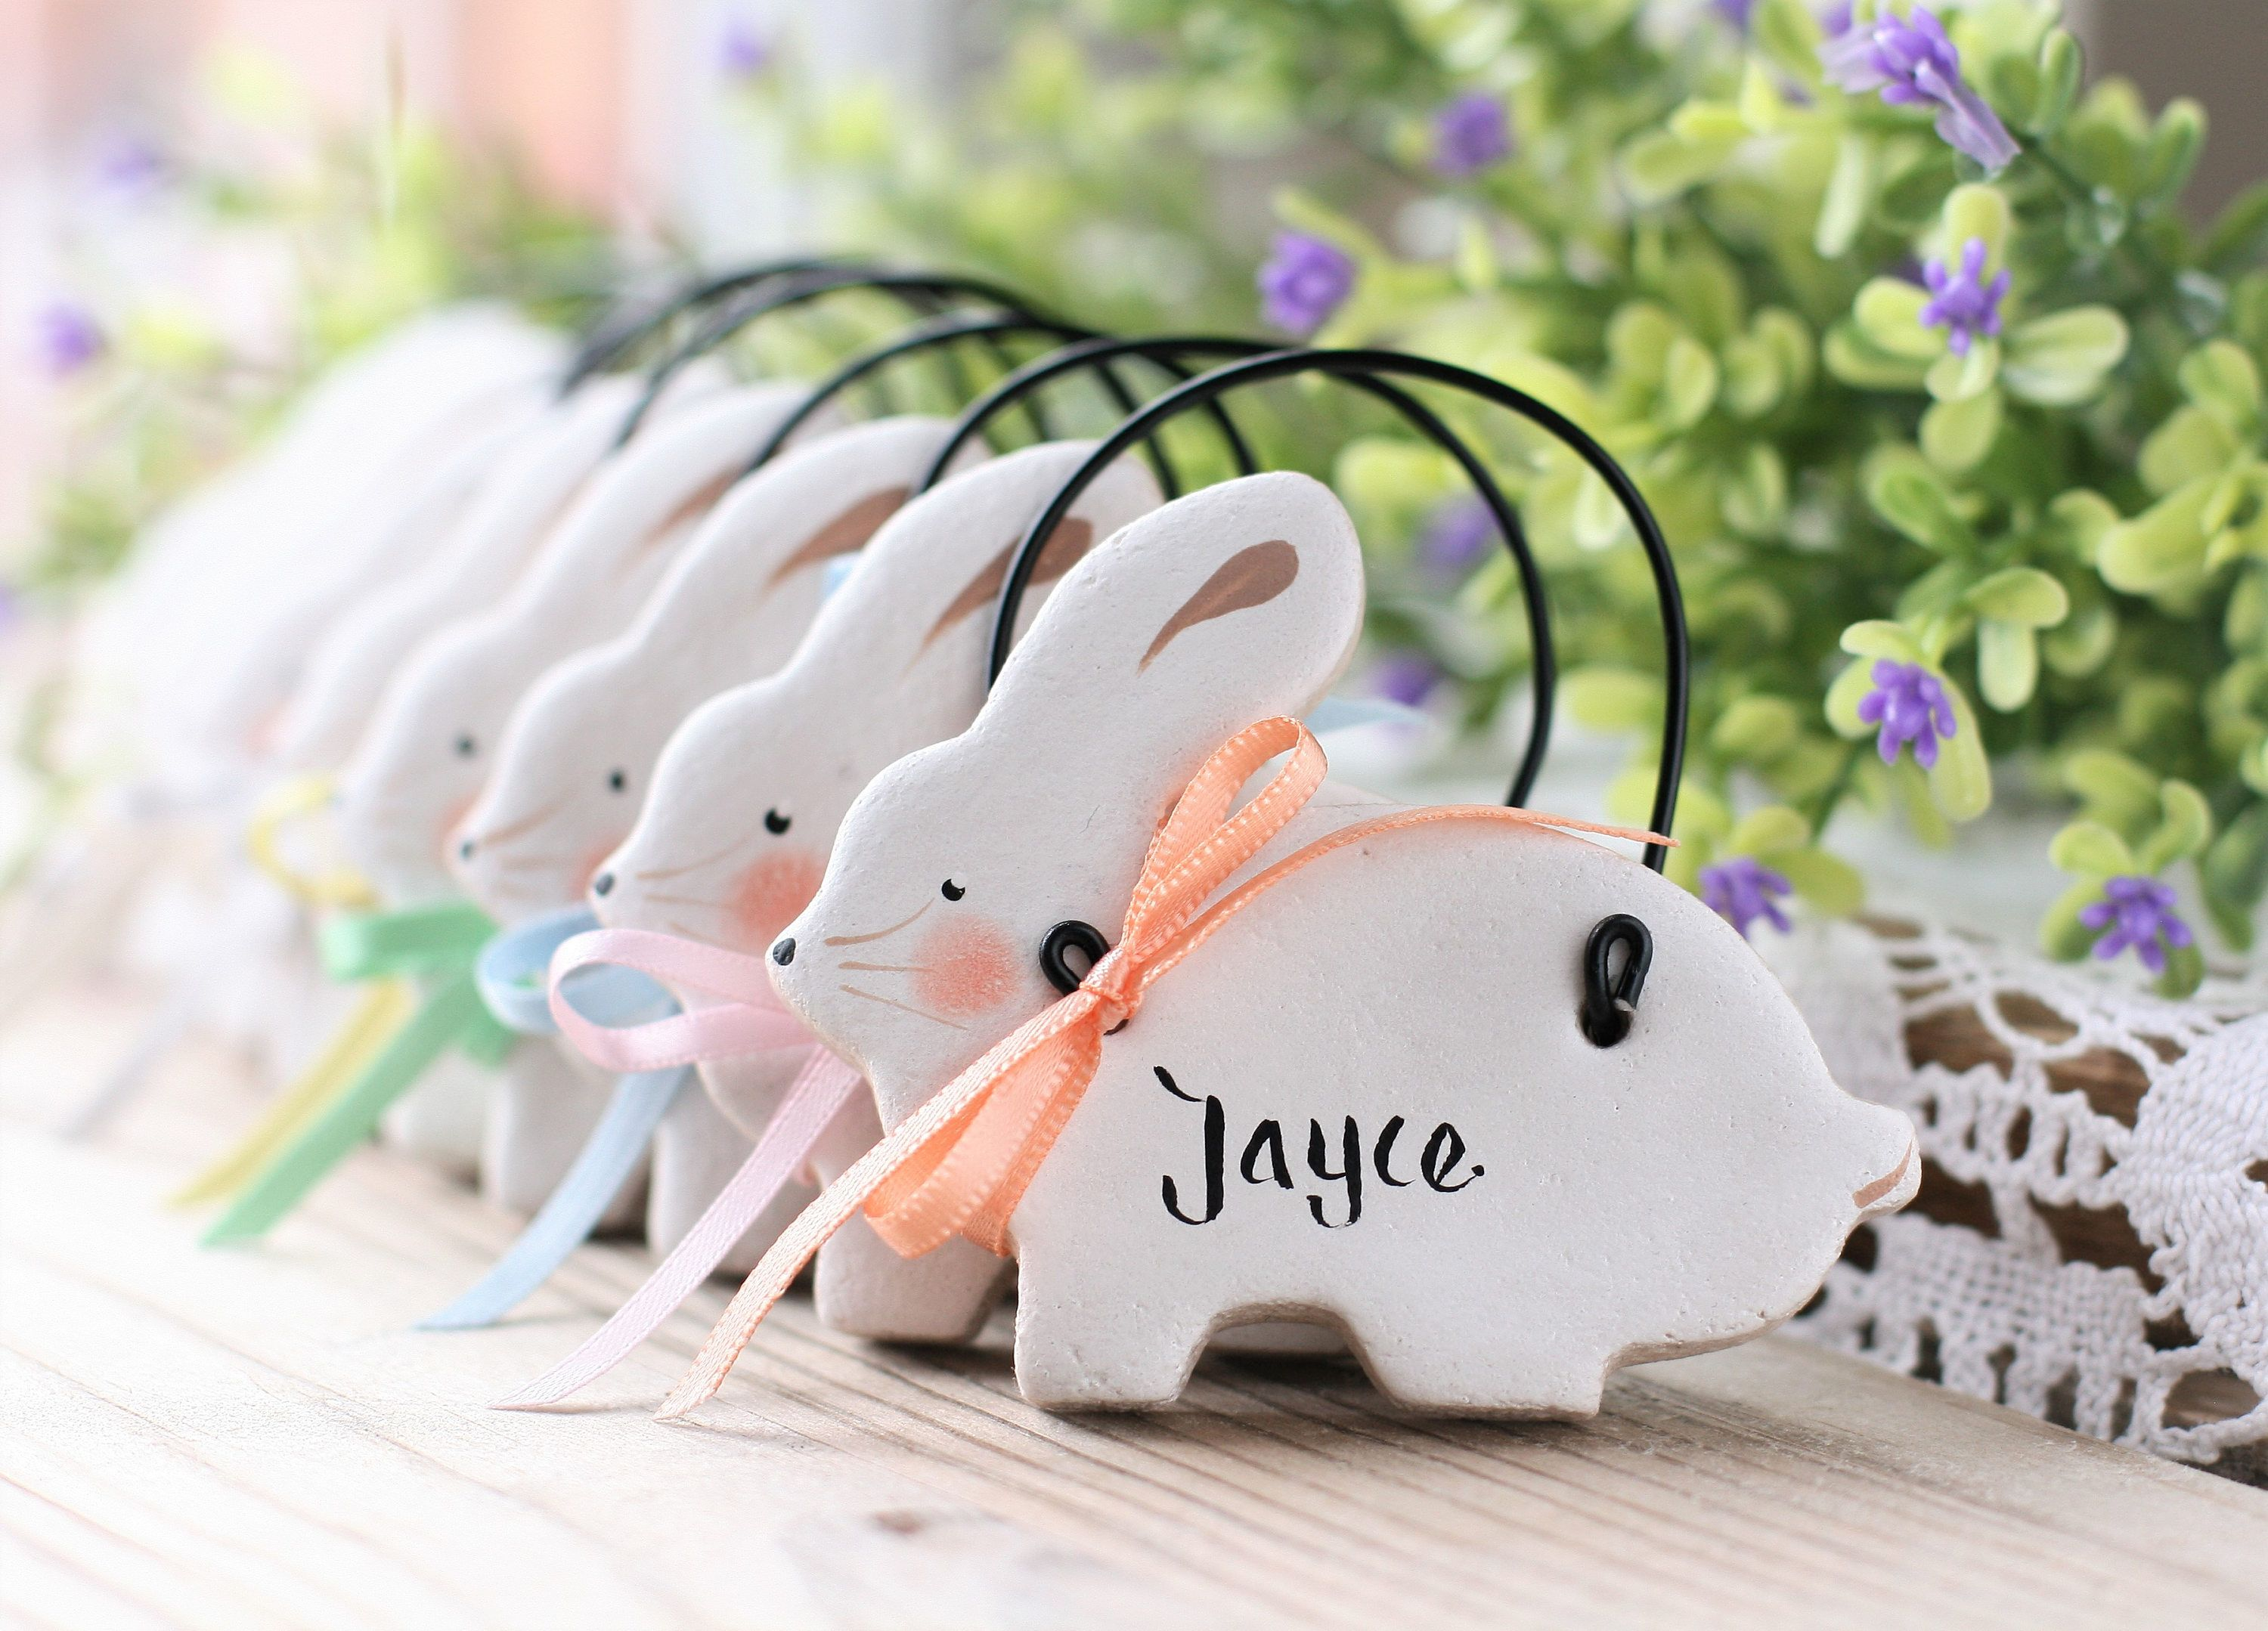 Personalised bunny decorations nursery decor new baby gift personalised bunny decorations nursery decor new baby gift christeningbaptism favors baby shower personalized easter family gifts negle Images